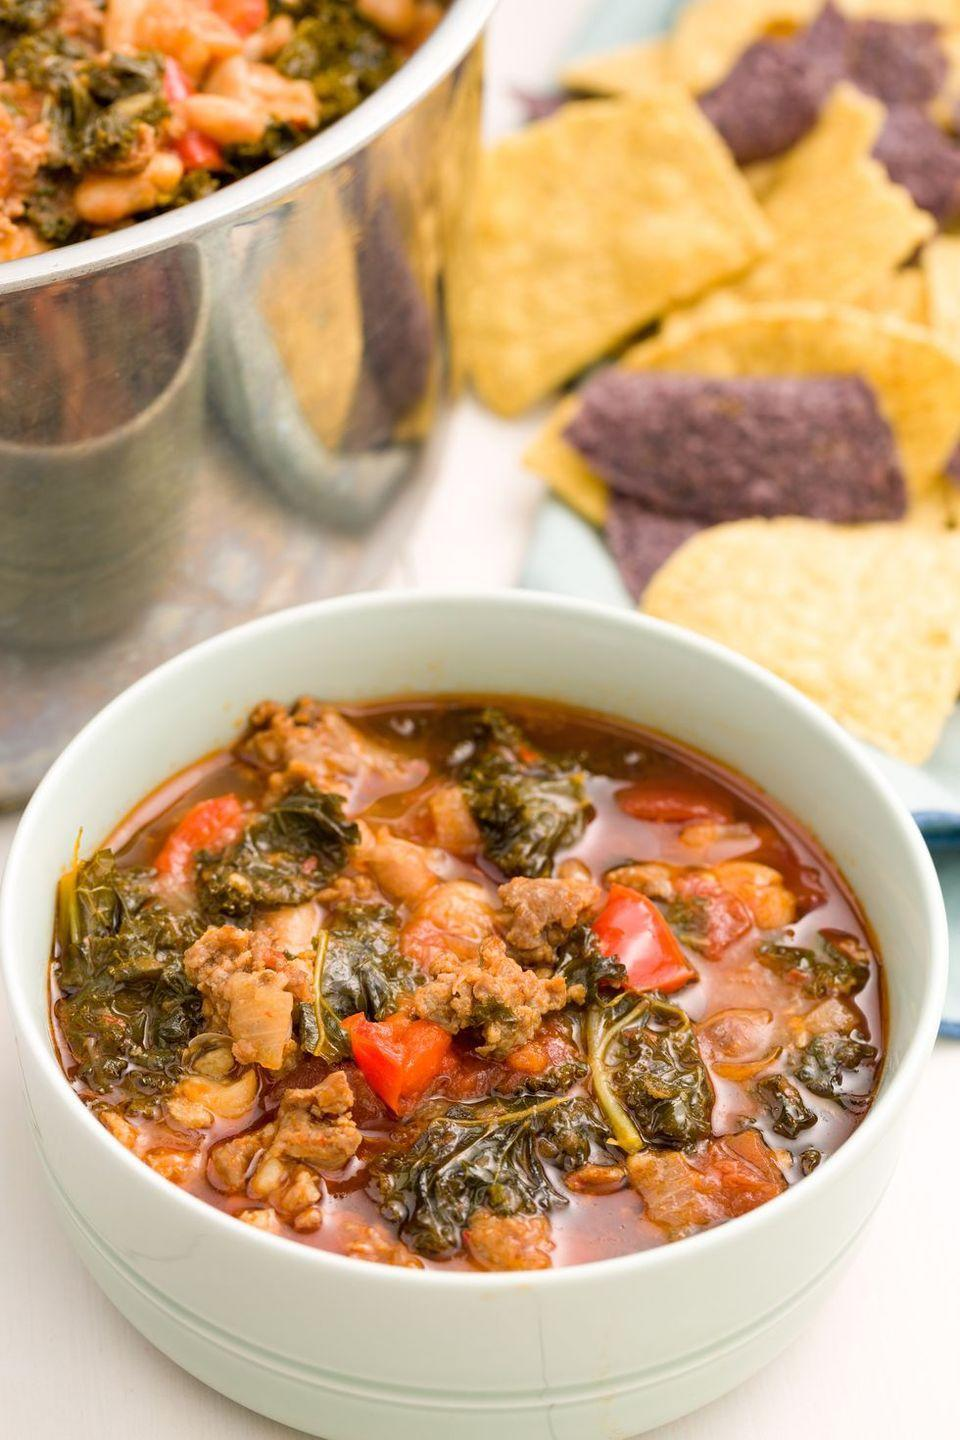 "<p>Add some greens to your meal with this Italian-inspired version.</p><p><em><a href=""https://www.delish.com/cooking/recipe-ideas/recipes/a45520/spicy-turkey-sausage-kale-chili-recipe/"" rel=""nofollow noopener"" target=""_blank"" data-ylk=""slk:Get the recipe from Delish »"" class=""link rapid-noclick-resp"">Get the recipe from Delish »</a></em></p>"